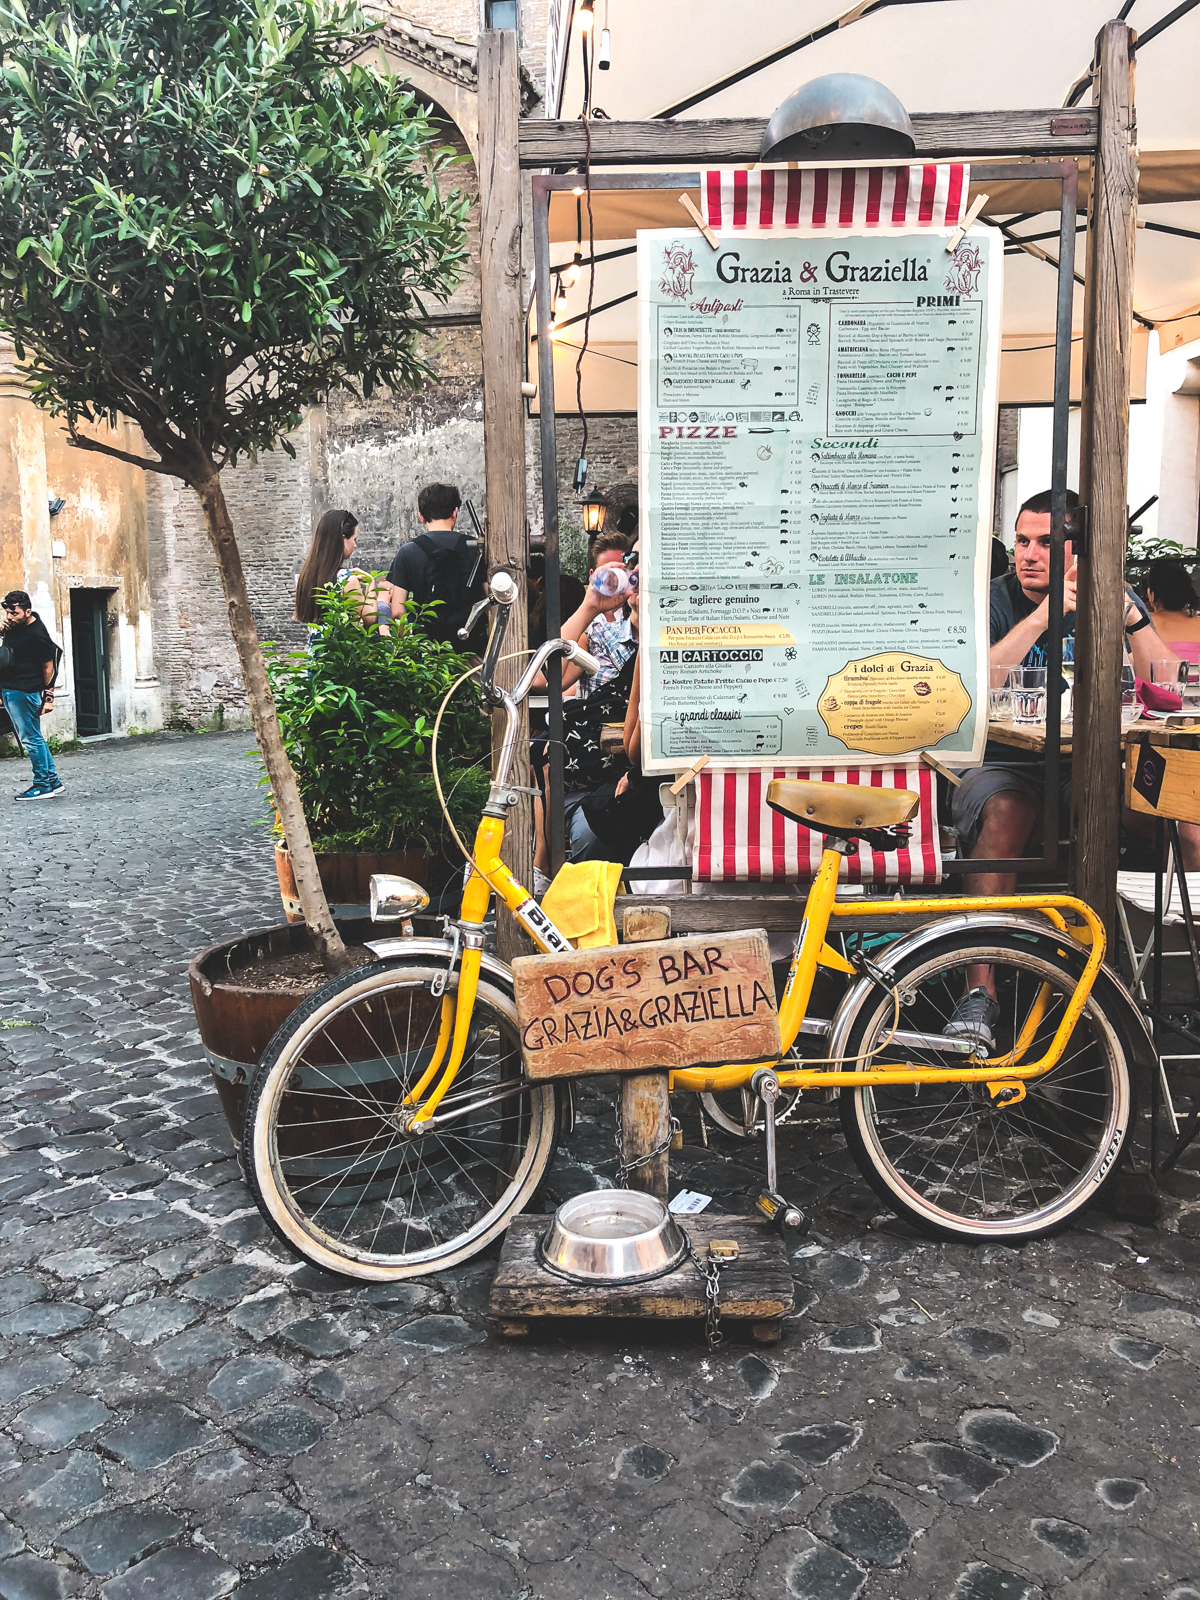 outside at Grazia & Graziella in Trastevere